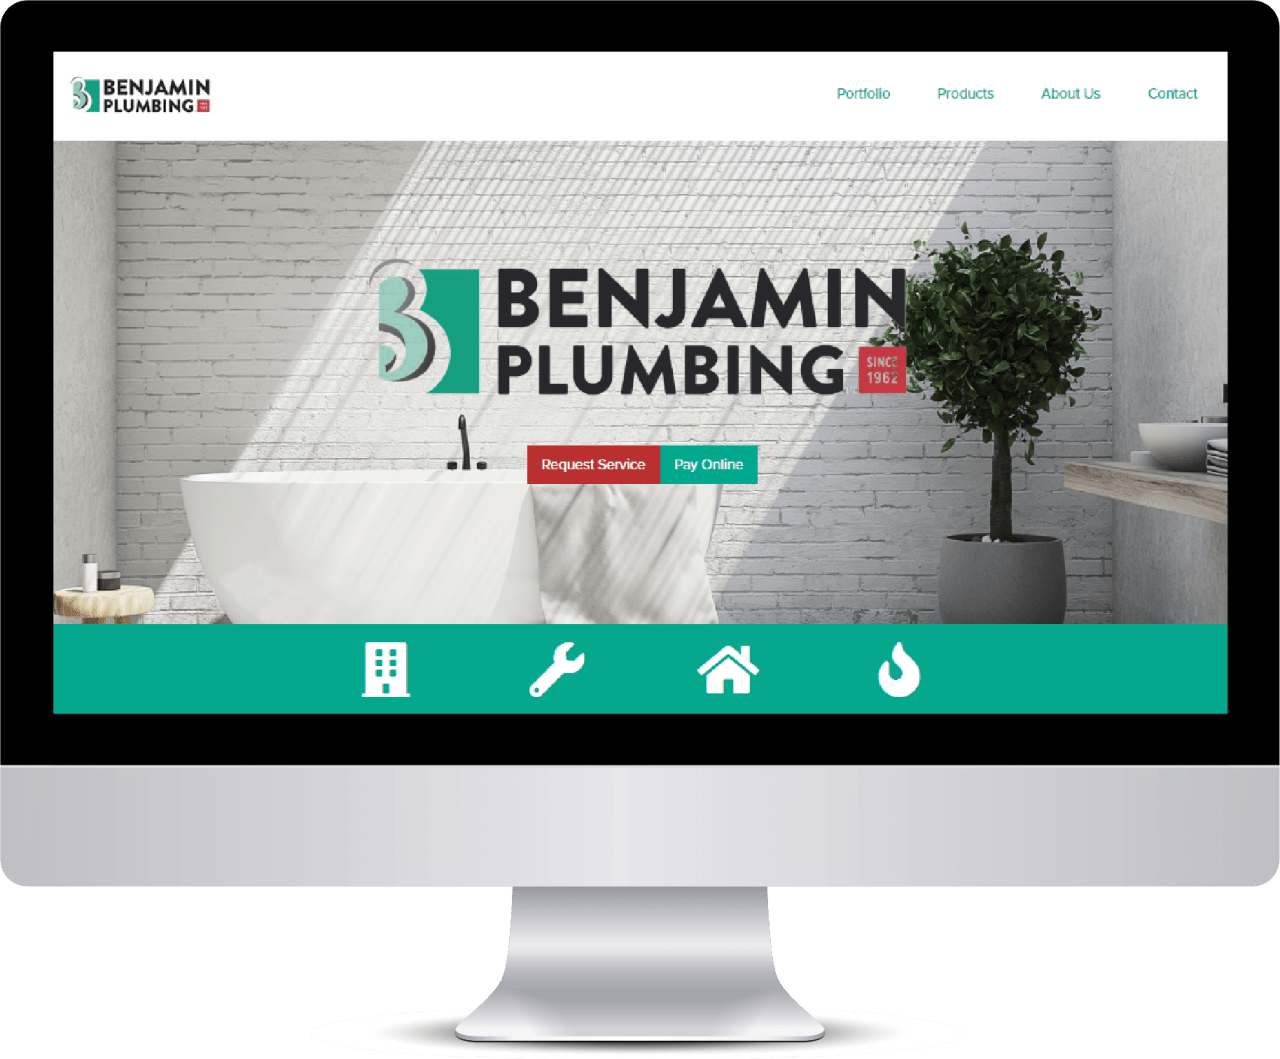 Benjamin Plumbing home page on desktop